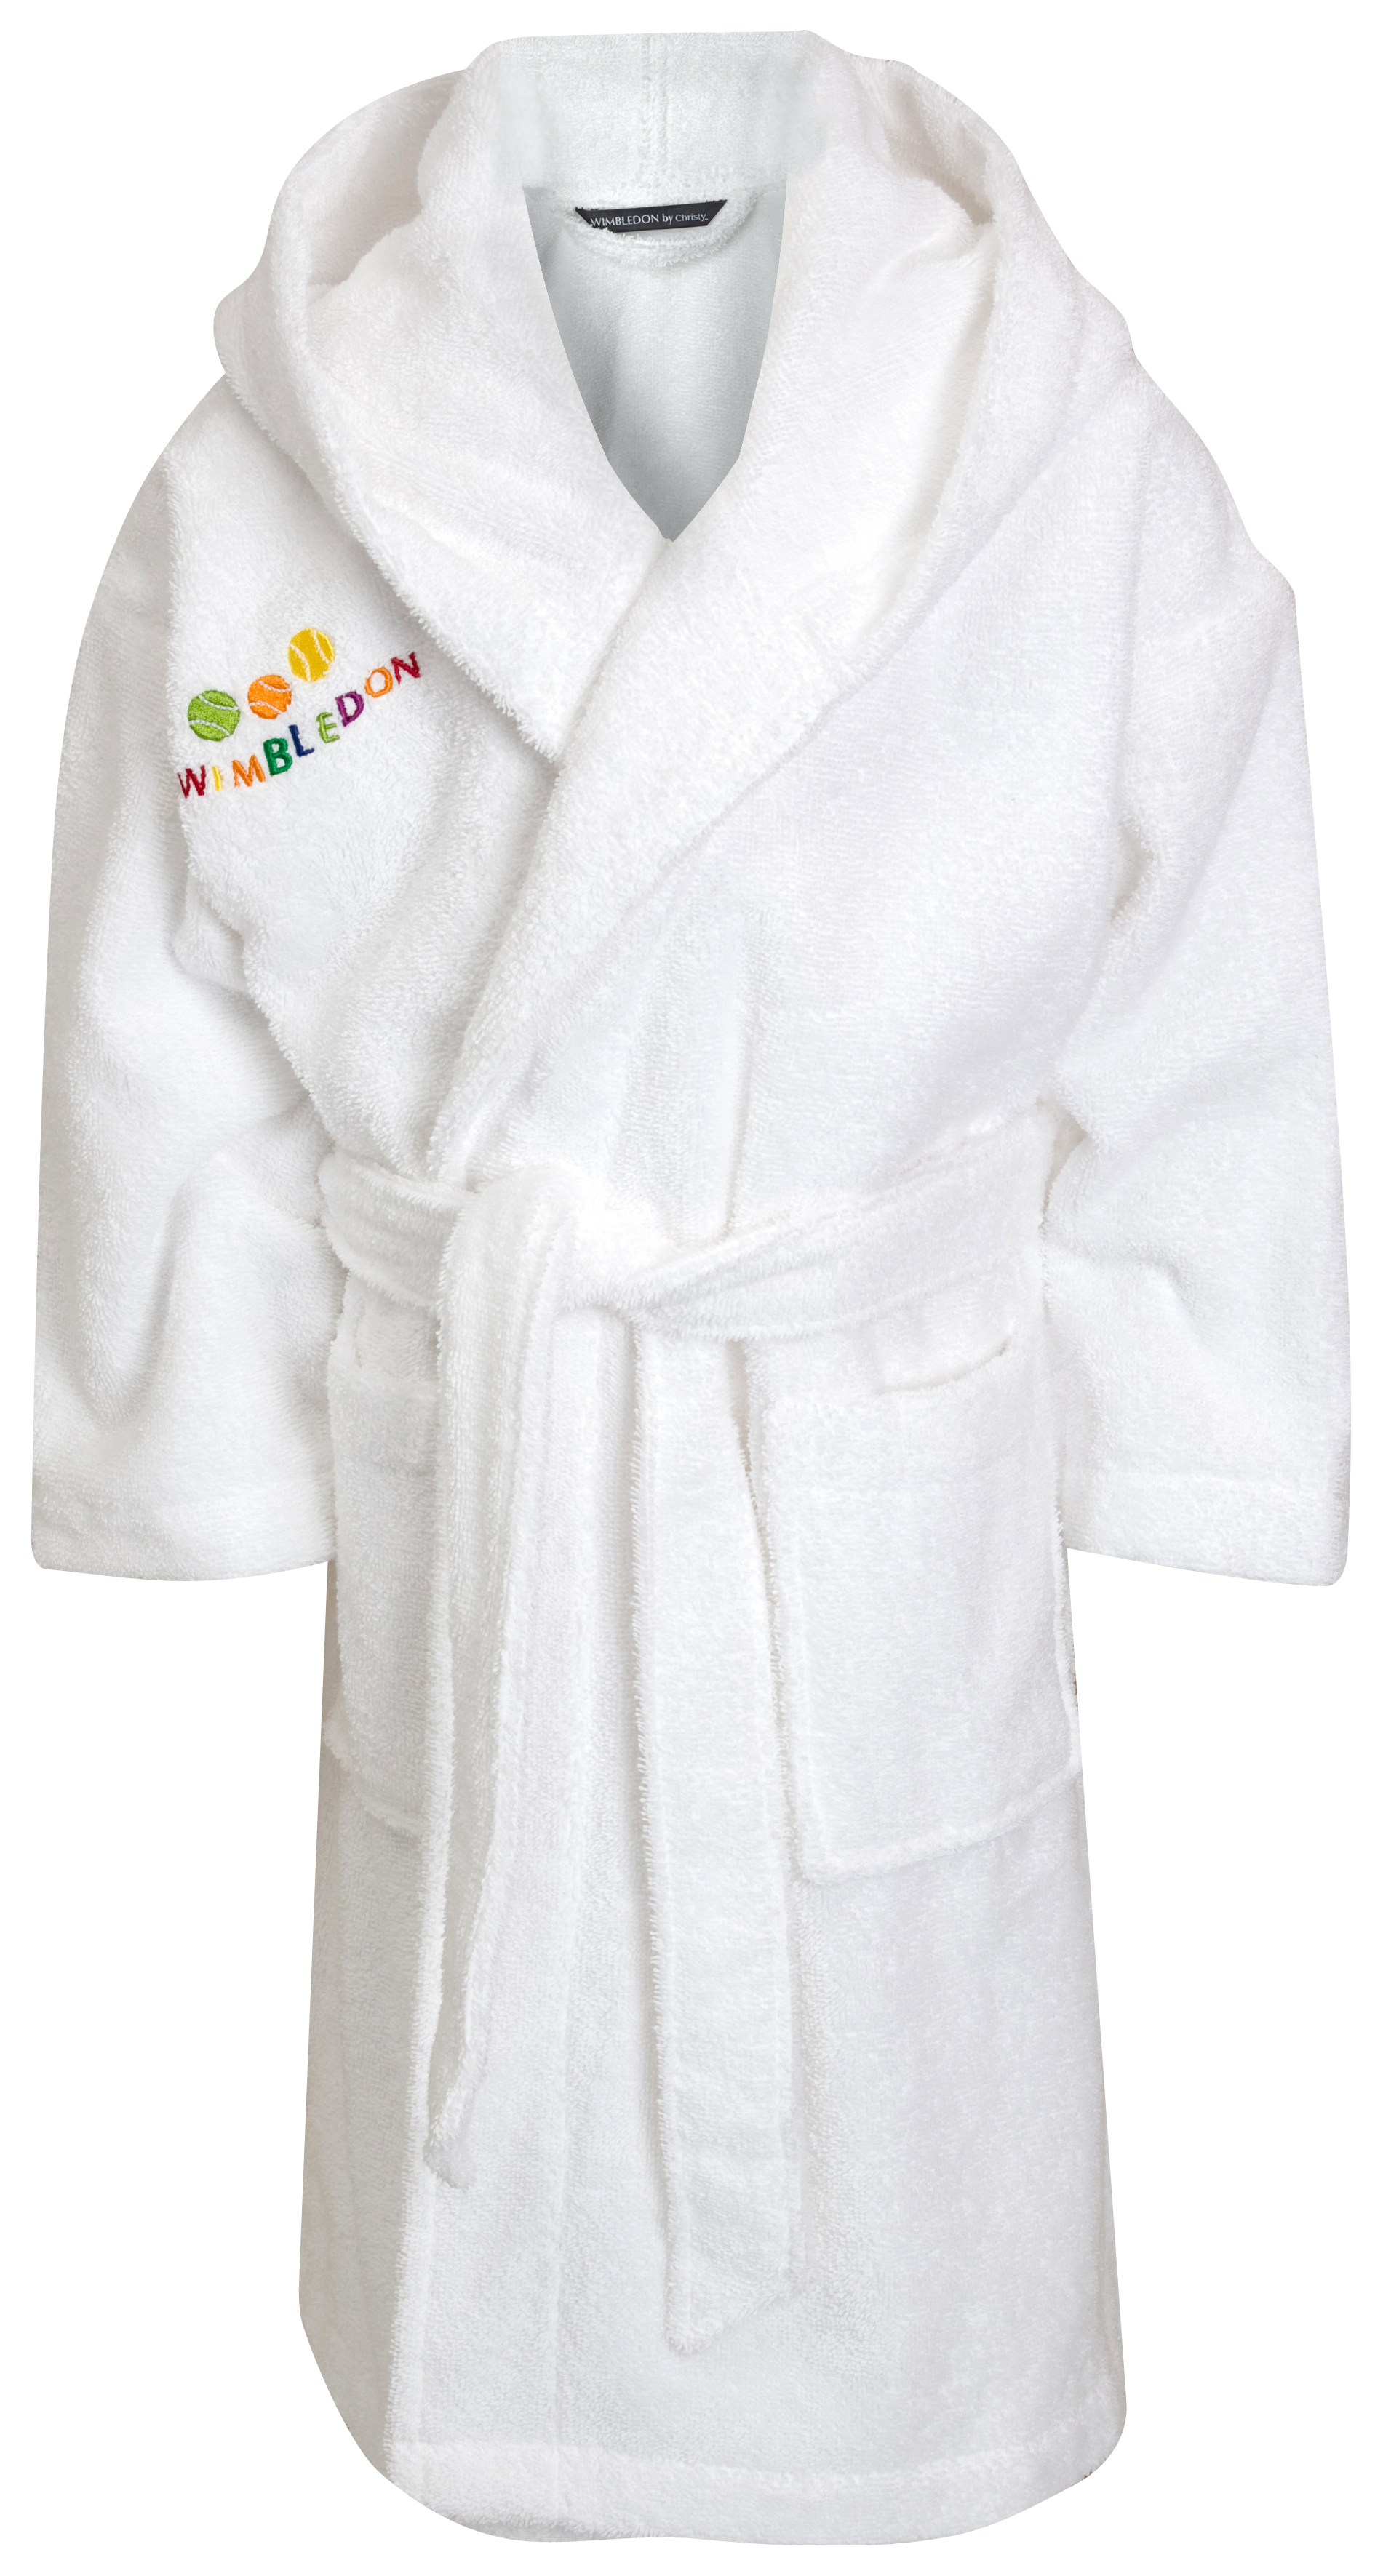 Wimbledon Childrens Terry Robe White